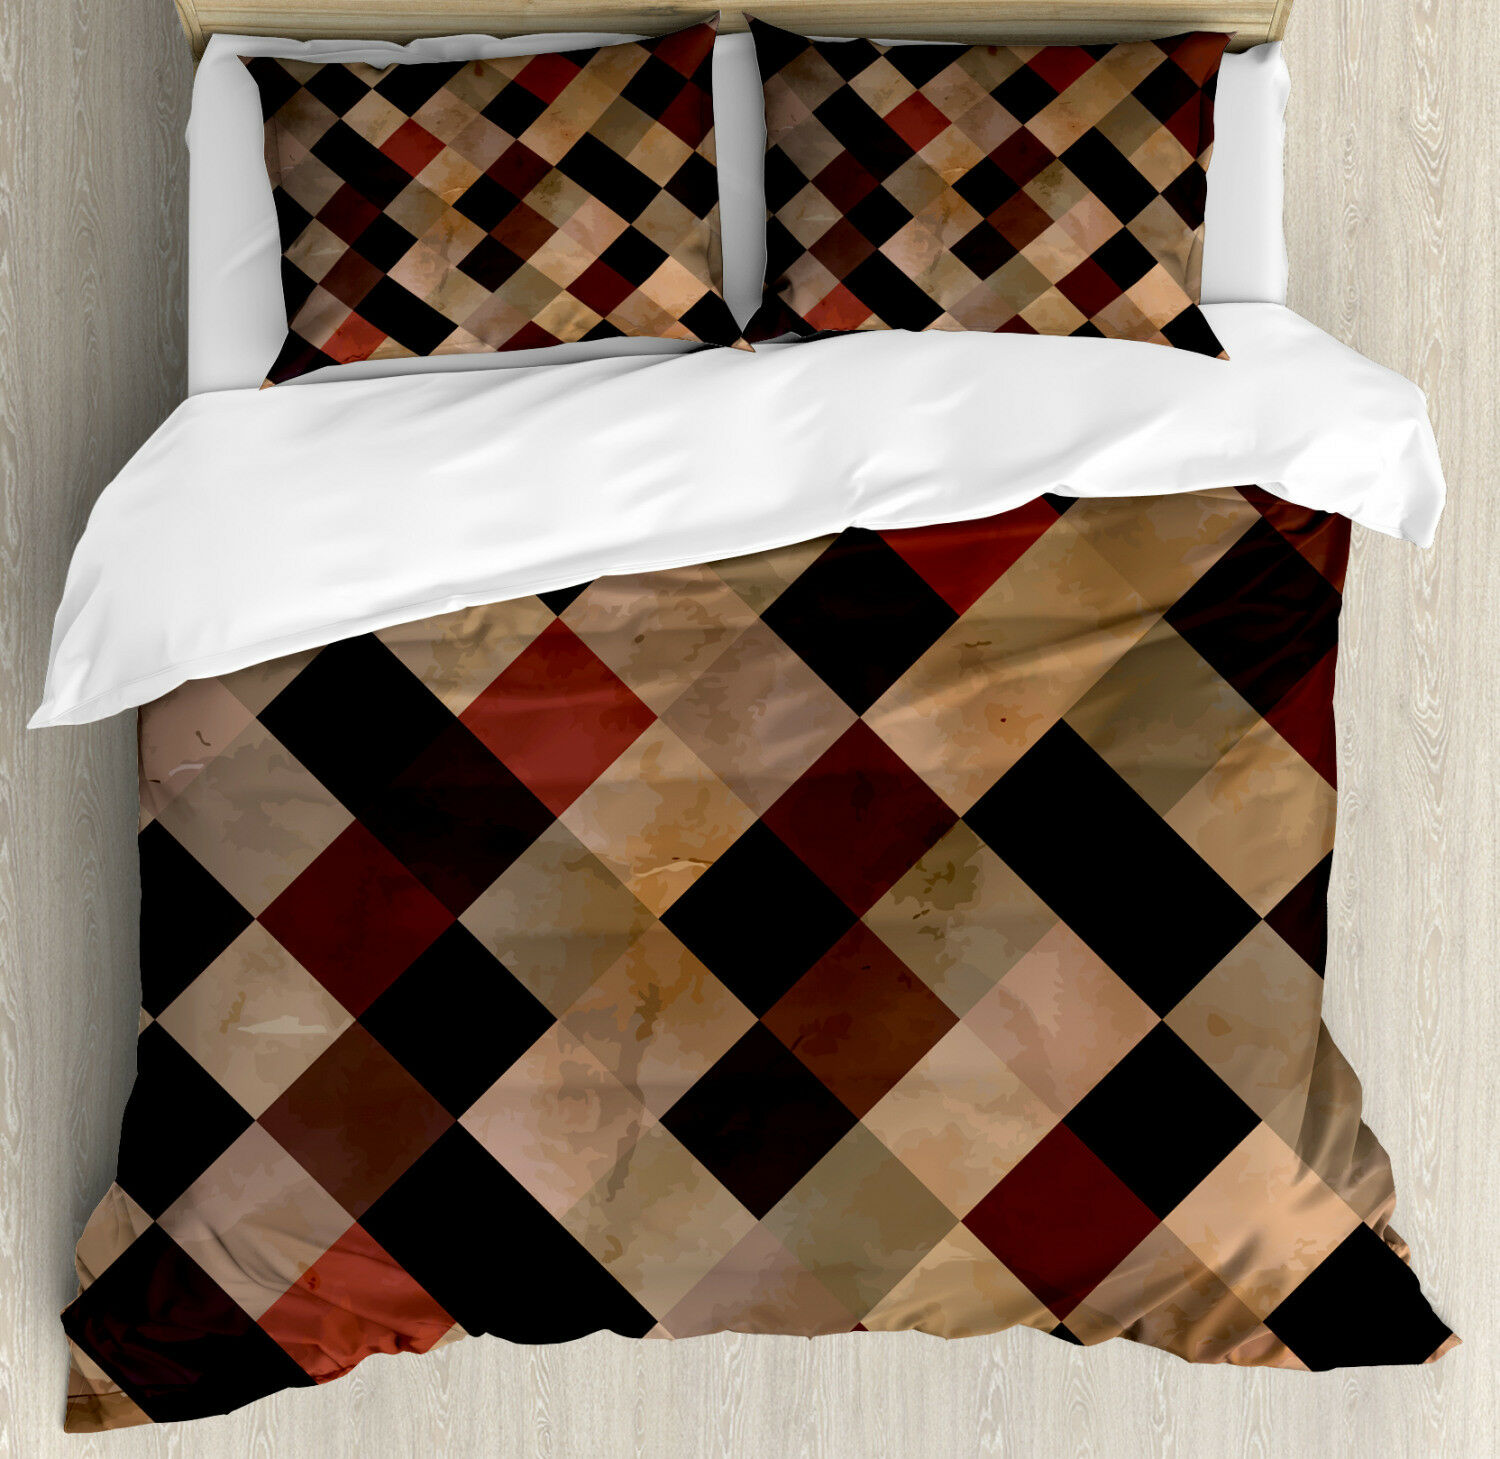 Grunge Duvet Cover Set with Pillow Shams Antique Brown Toned Grid Print